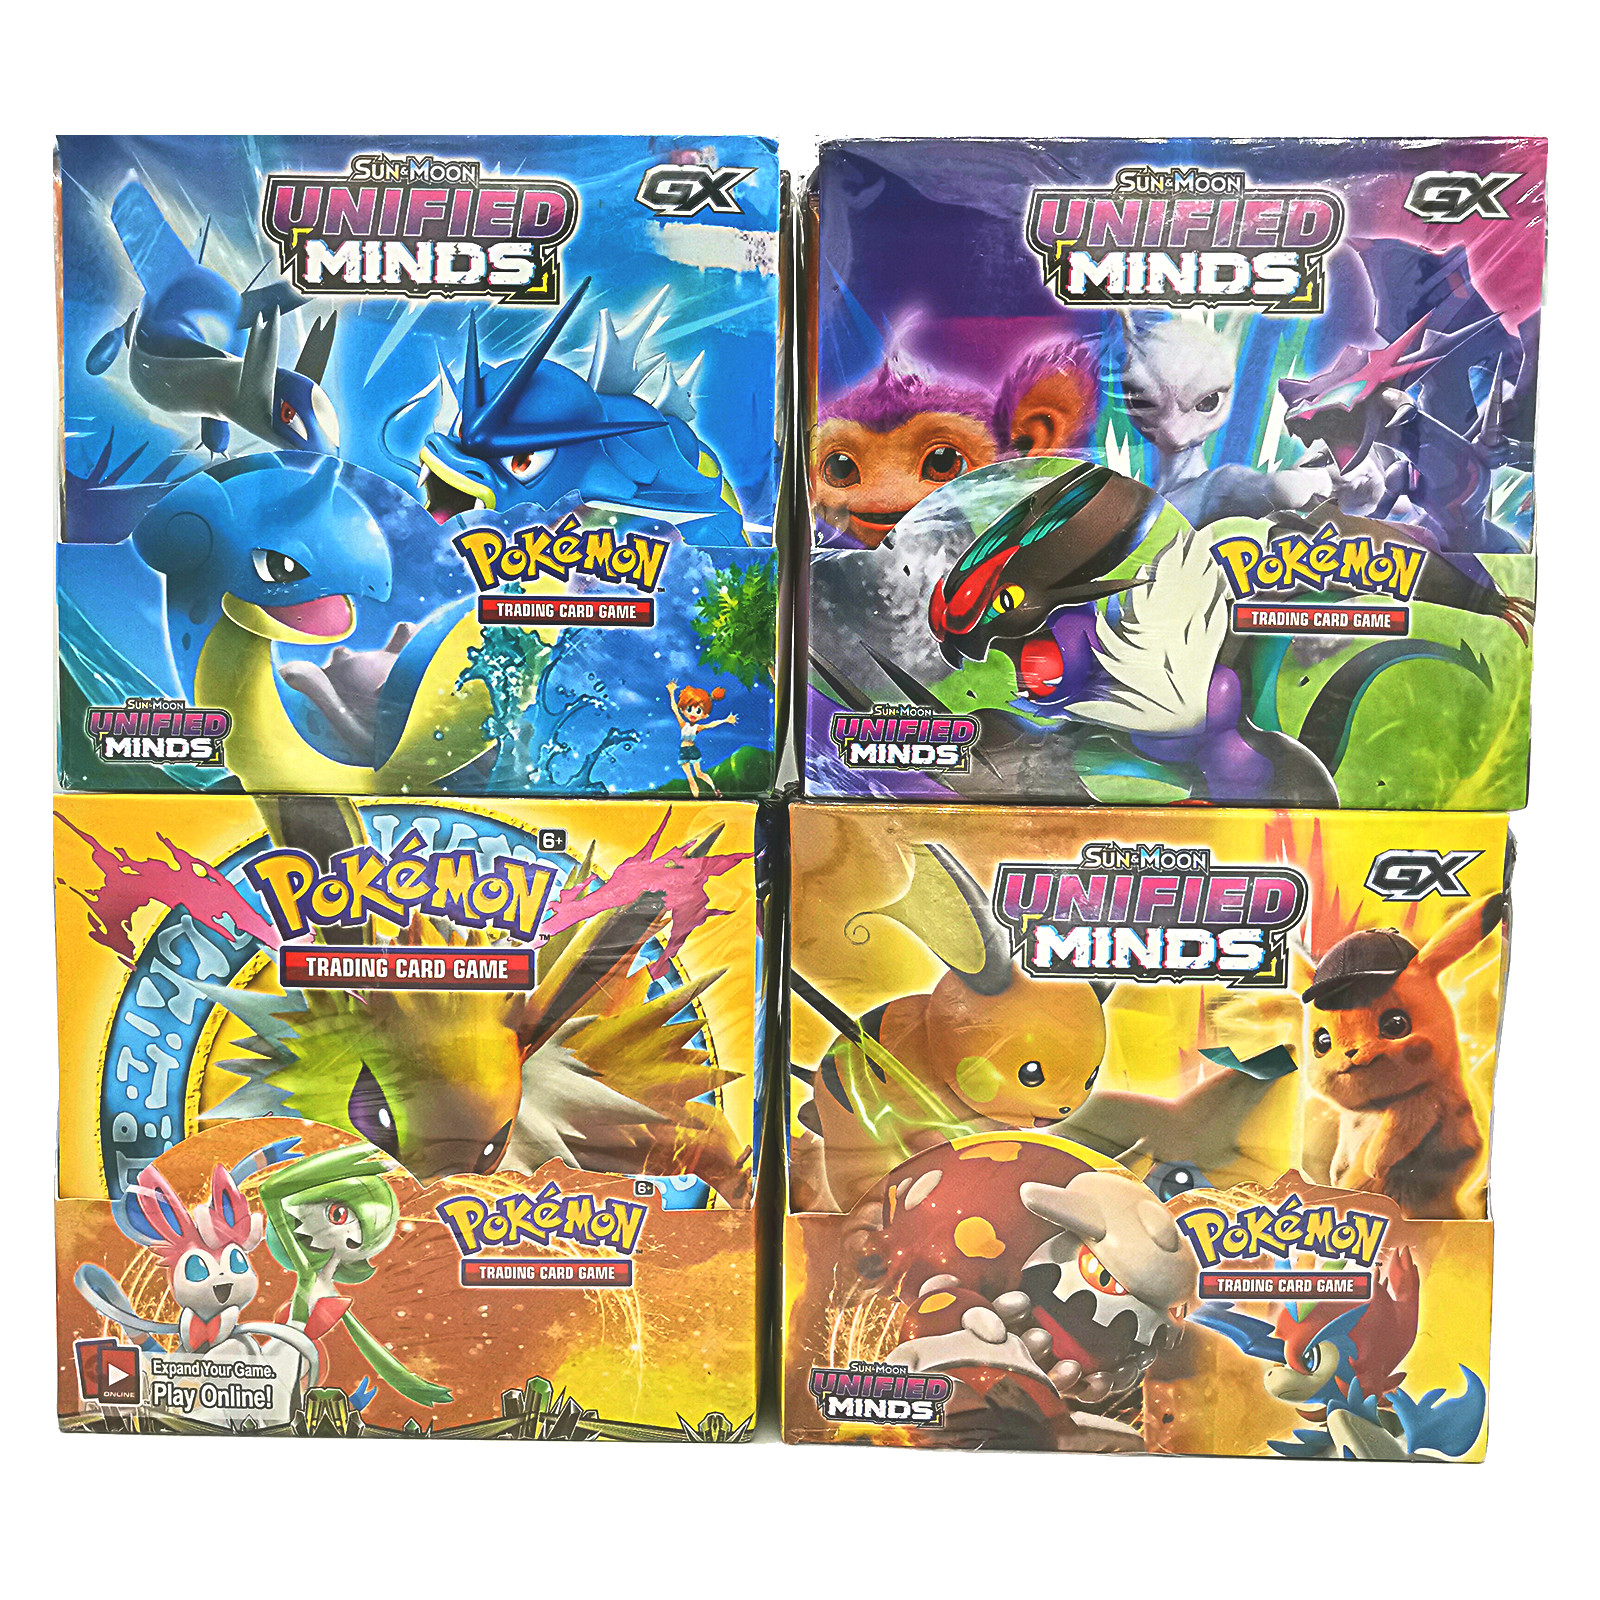 324pcs/set Pokemon TAKARA TOMY Battle Toys Hobbies Hobby Collectibles Game Collection Anime Cards For Children